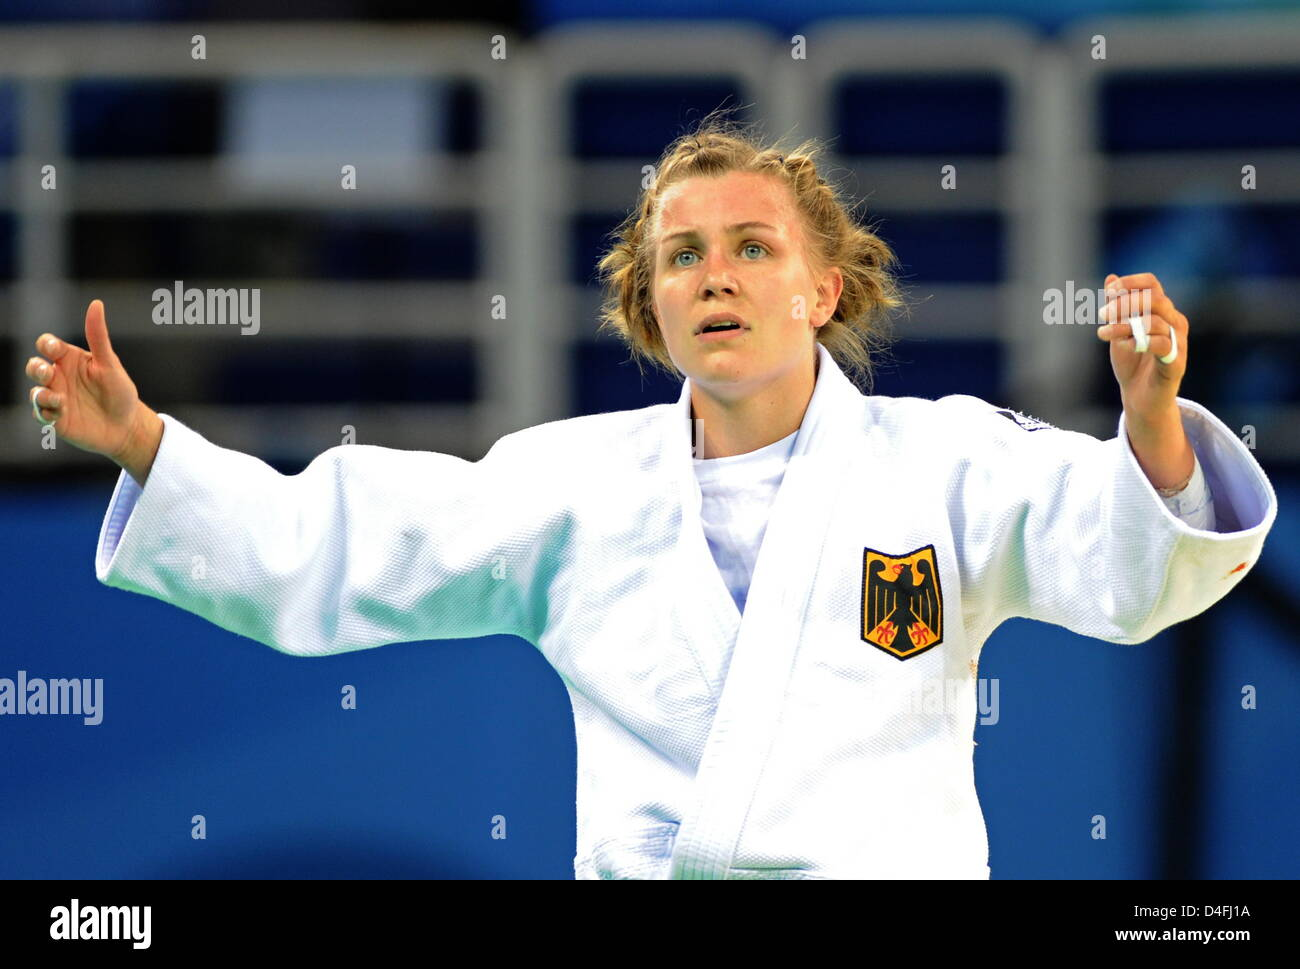 Michaela Baschin of Germany loose against Ludmilla Bogdanova of Russia in the repechage round in the 48kg category - Stock Image